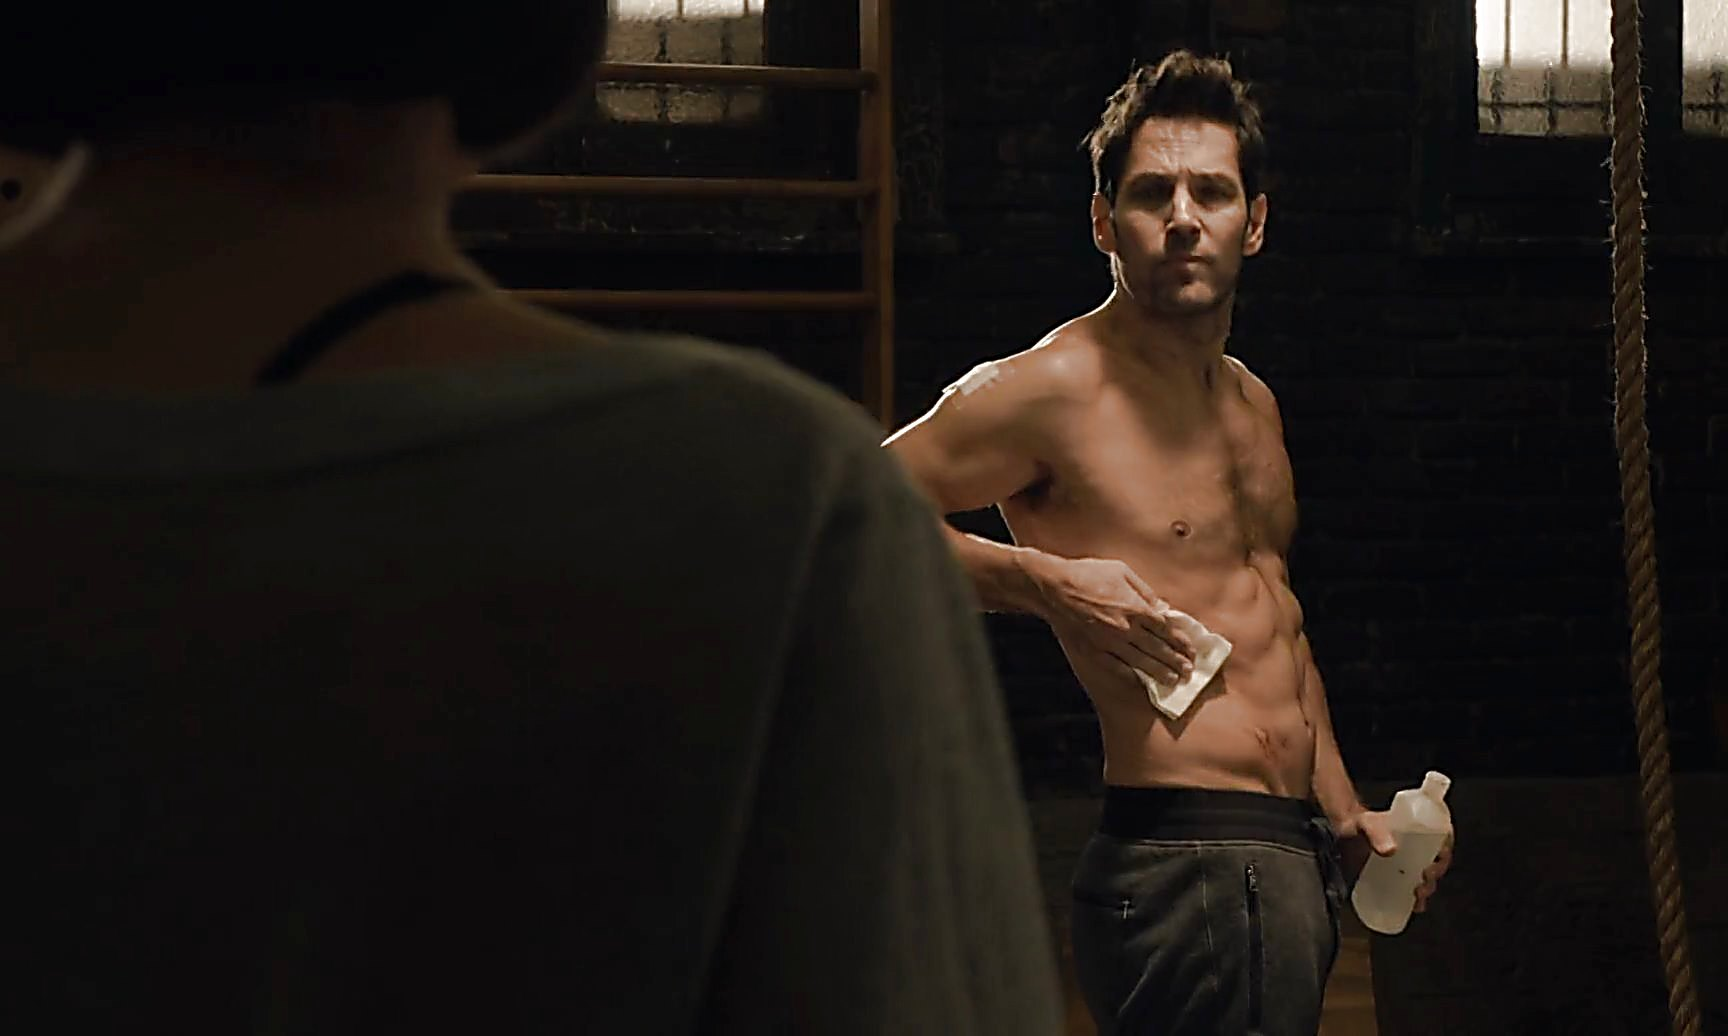 Paul Rudd sexy shirtless scene January 11, 2015, 7pm